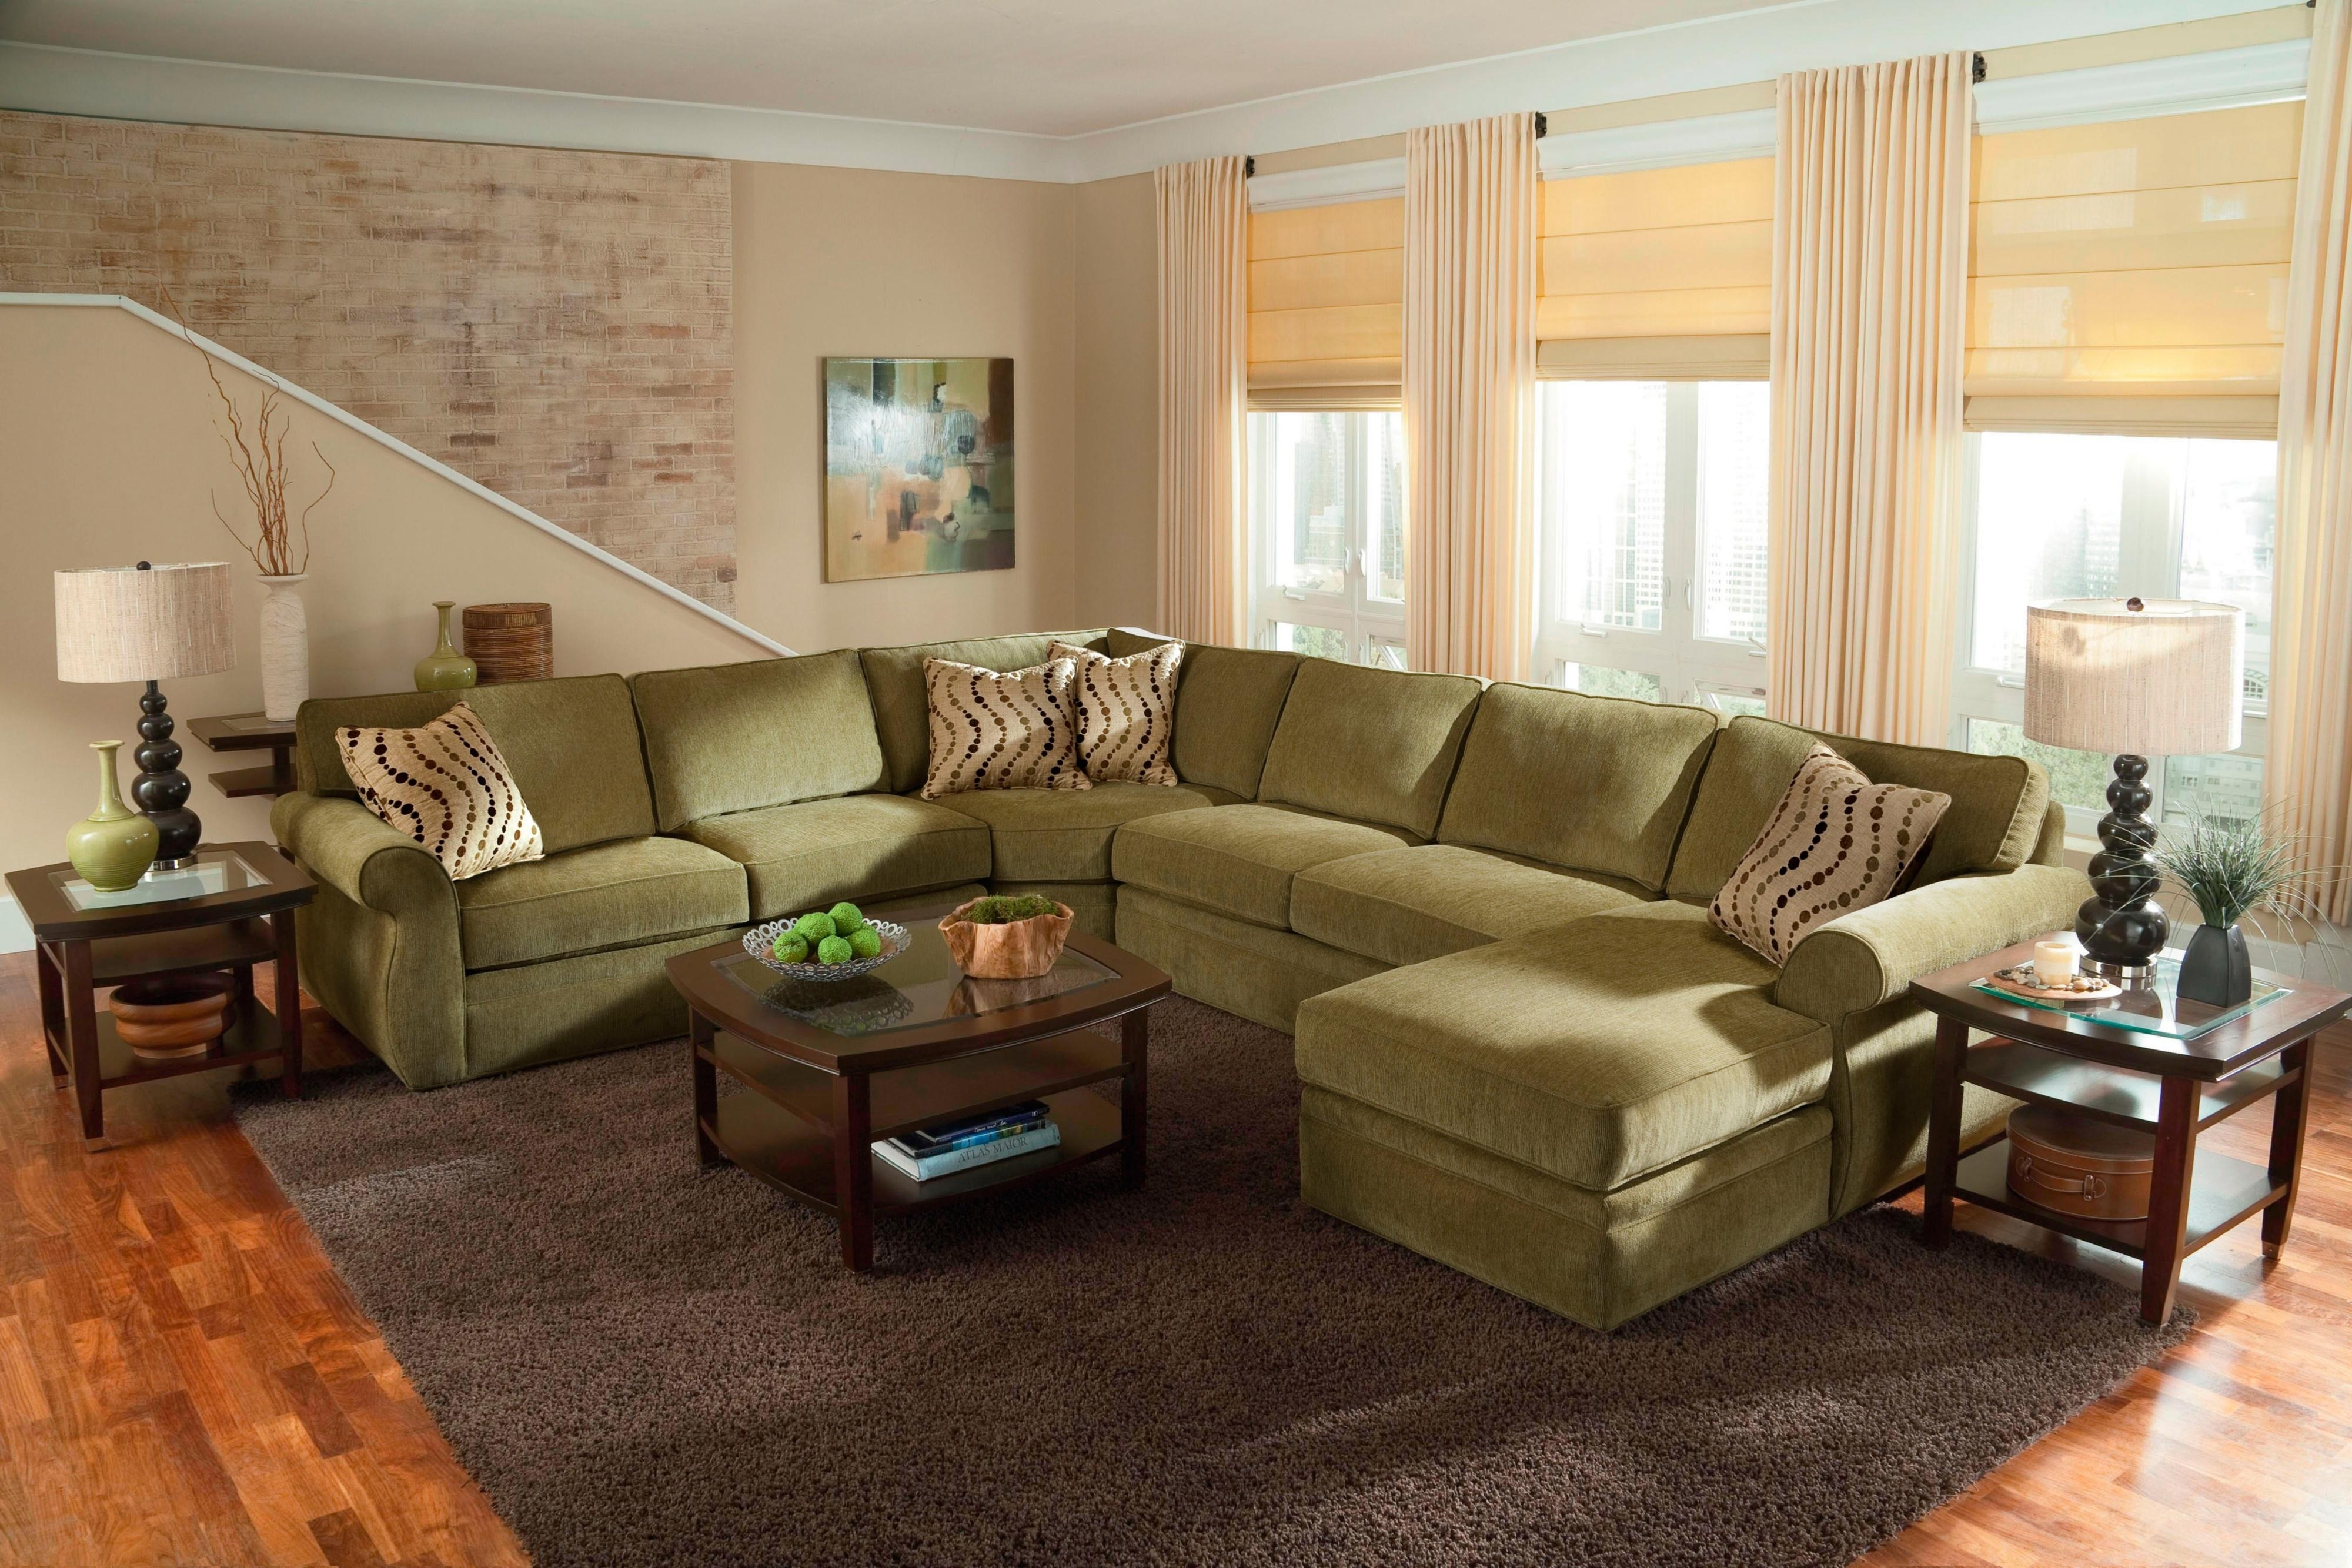 Modern U Shape Dark Olive Microfiber Sleeper Sofa Sectional Inside Newest The Bay Sectional Sofas (Gallery 19 of 20)